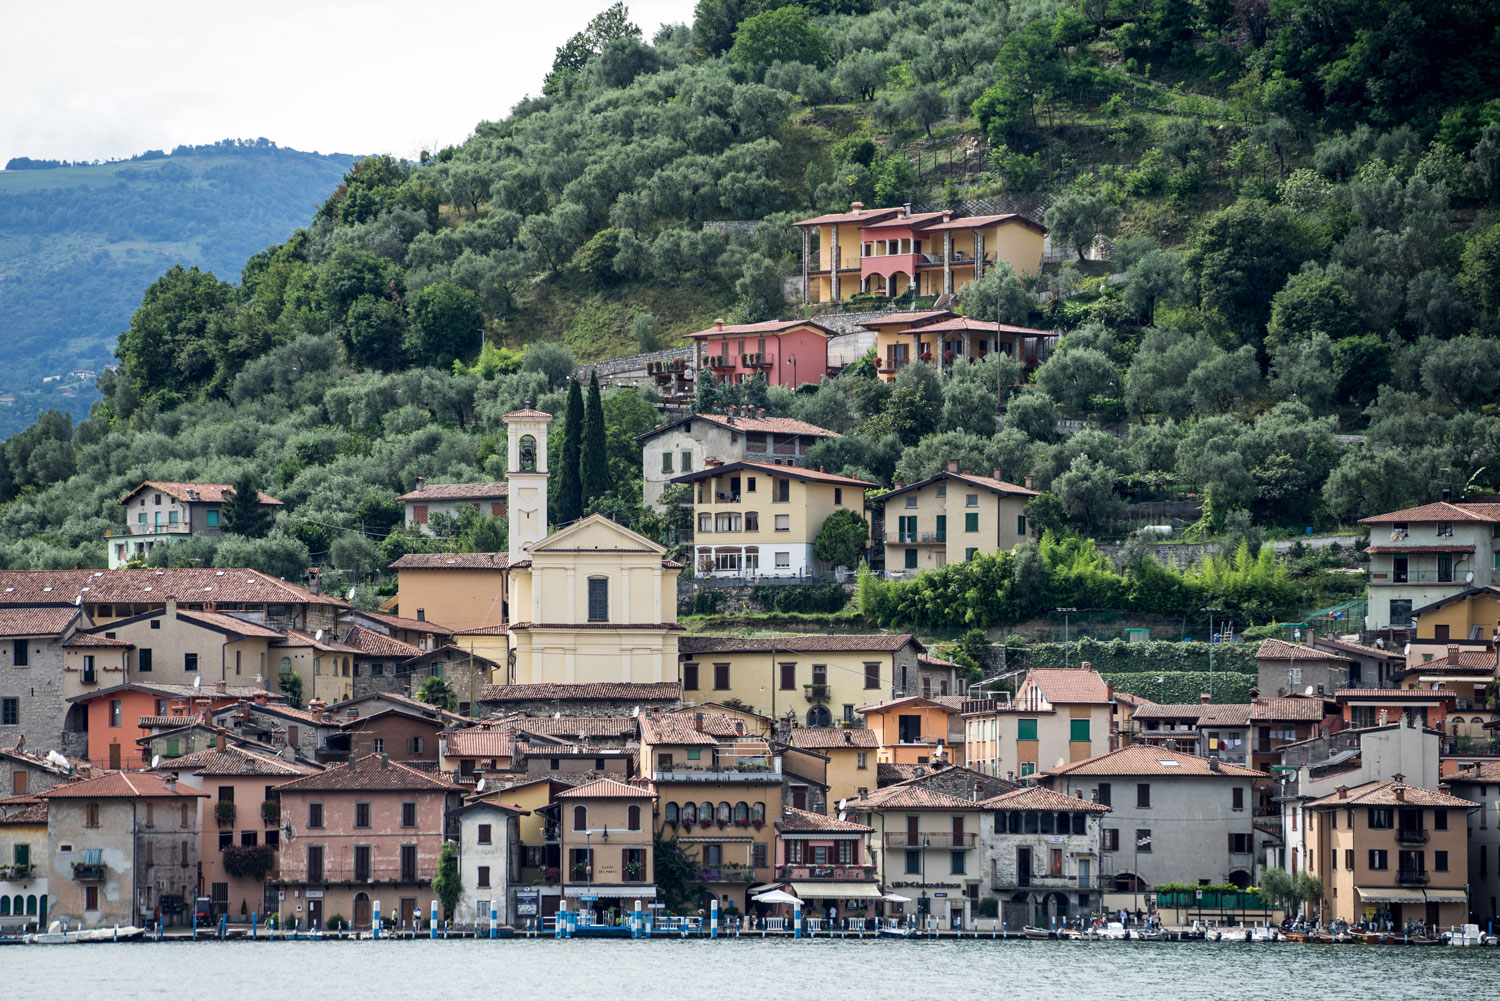 The town of Peschiera Maraglio on the island of Monte Isola